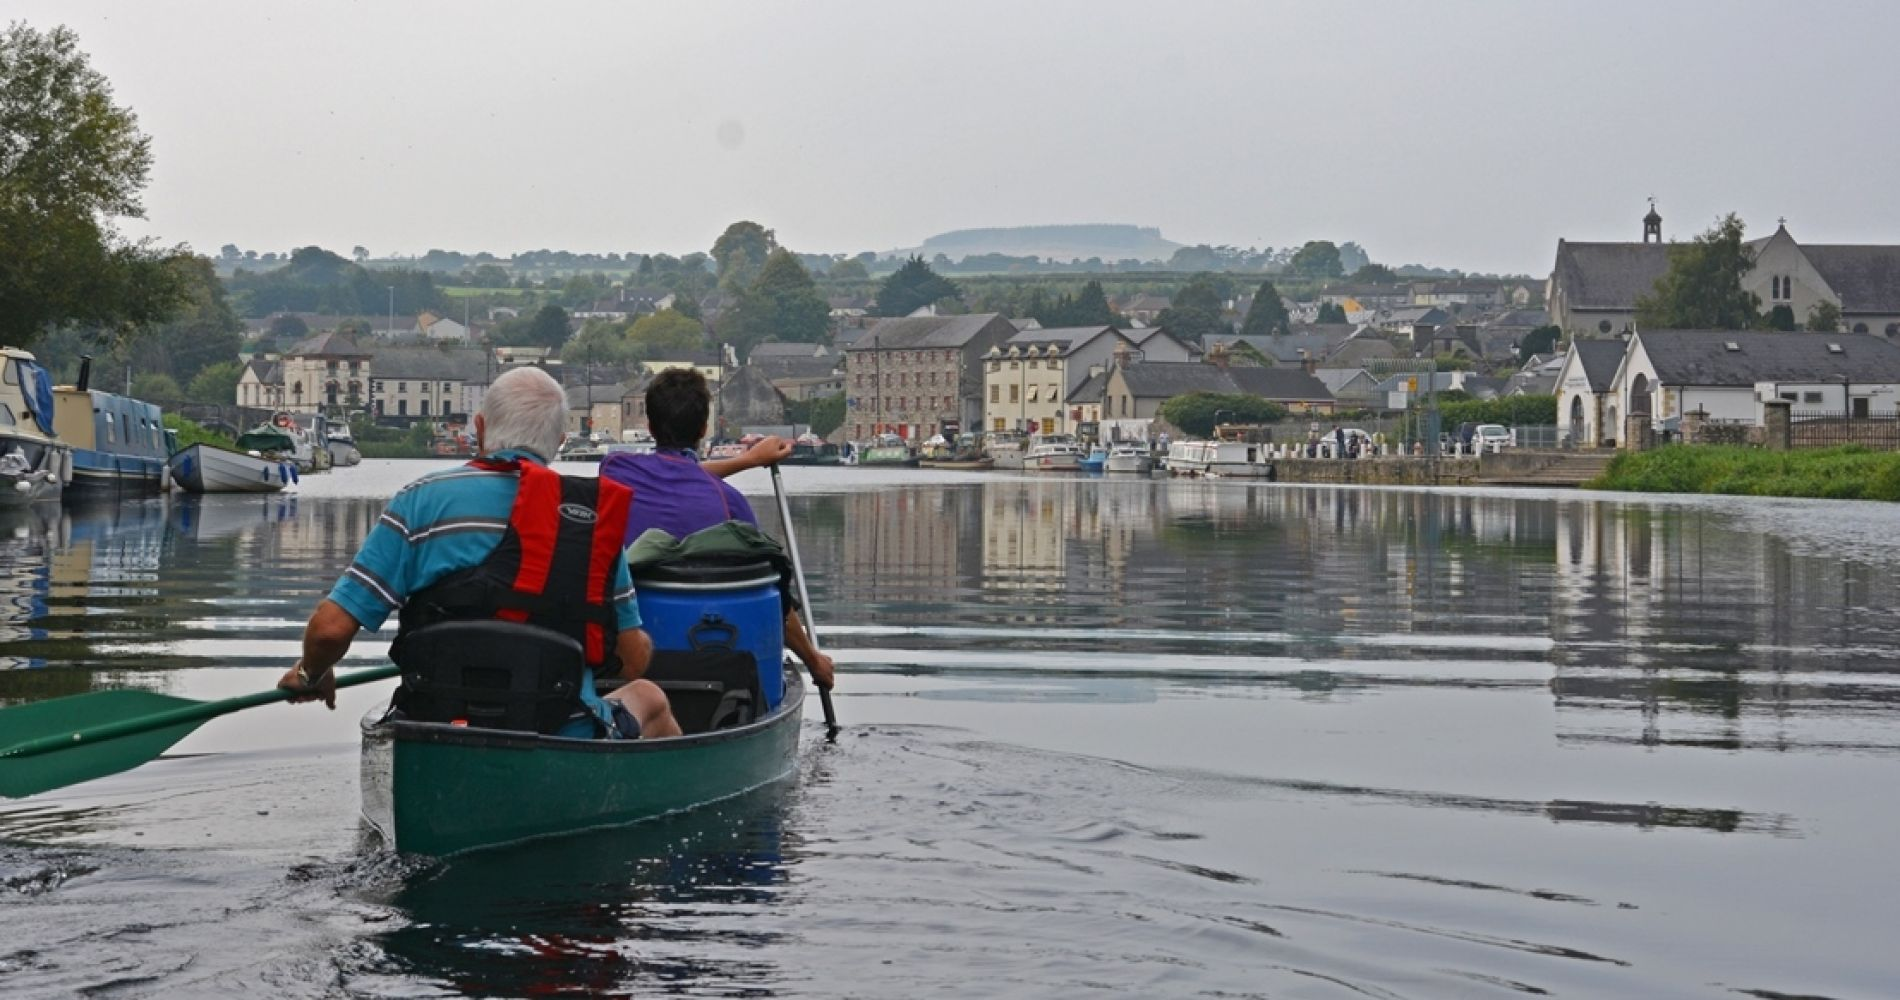 Barrow River Canoeing Wild Camping Ireland Tinggly Experience GIft